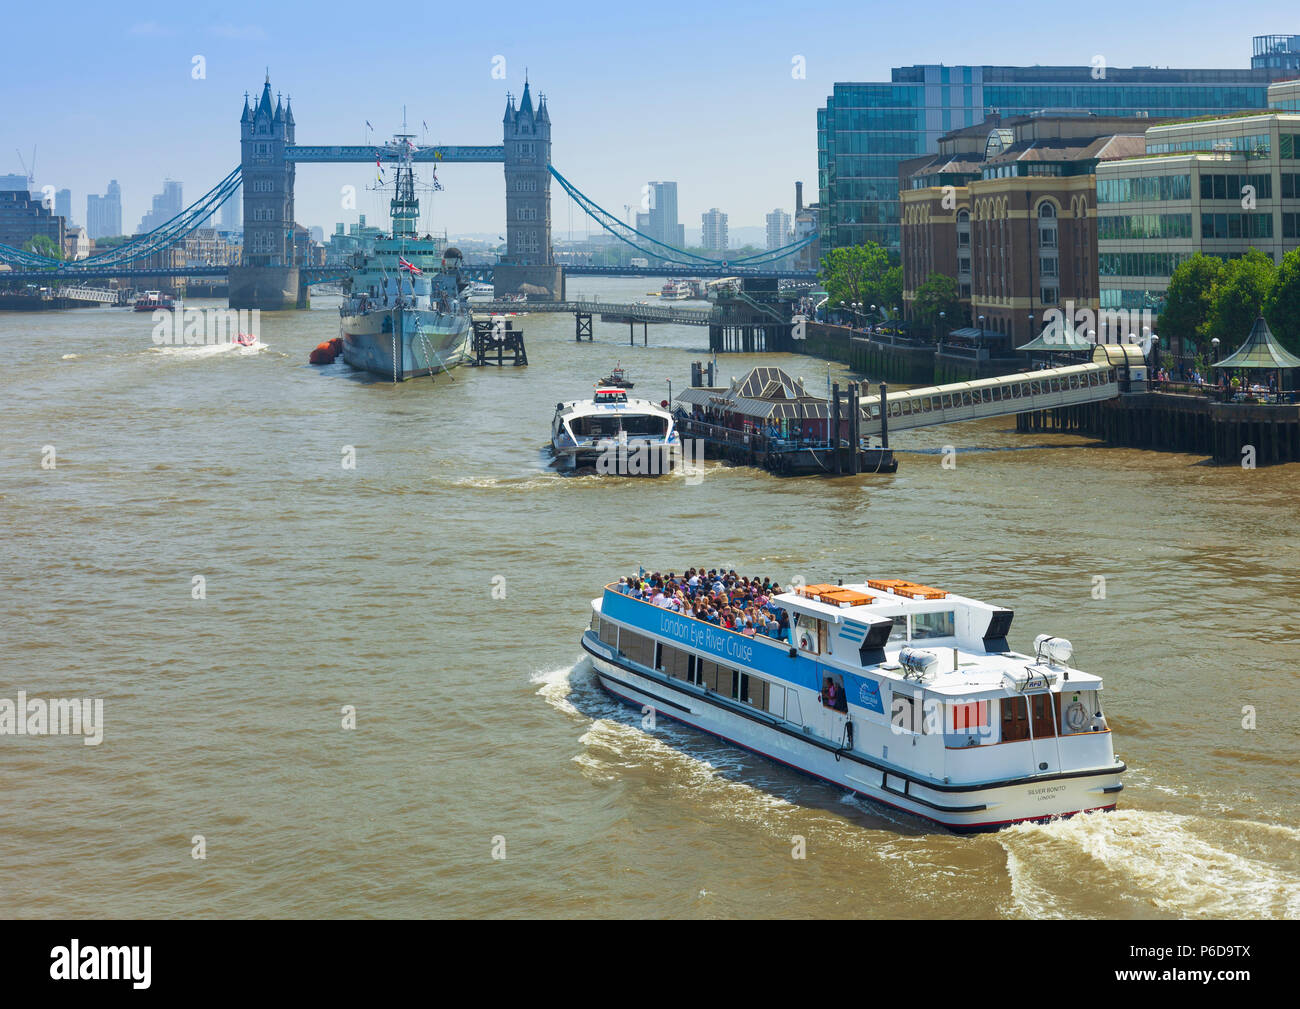 London eye river cruise boat on the river Thames approaching Tower bridge. - Stock Image